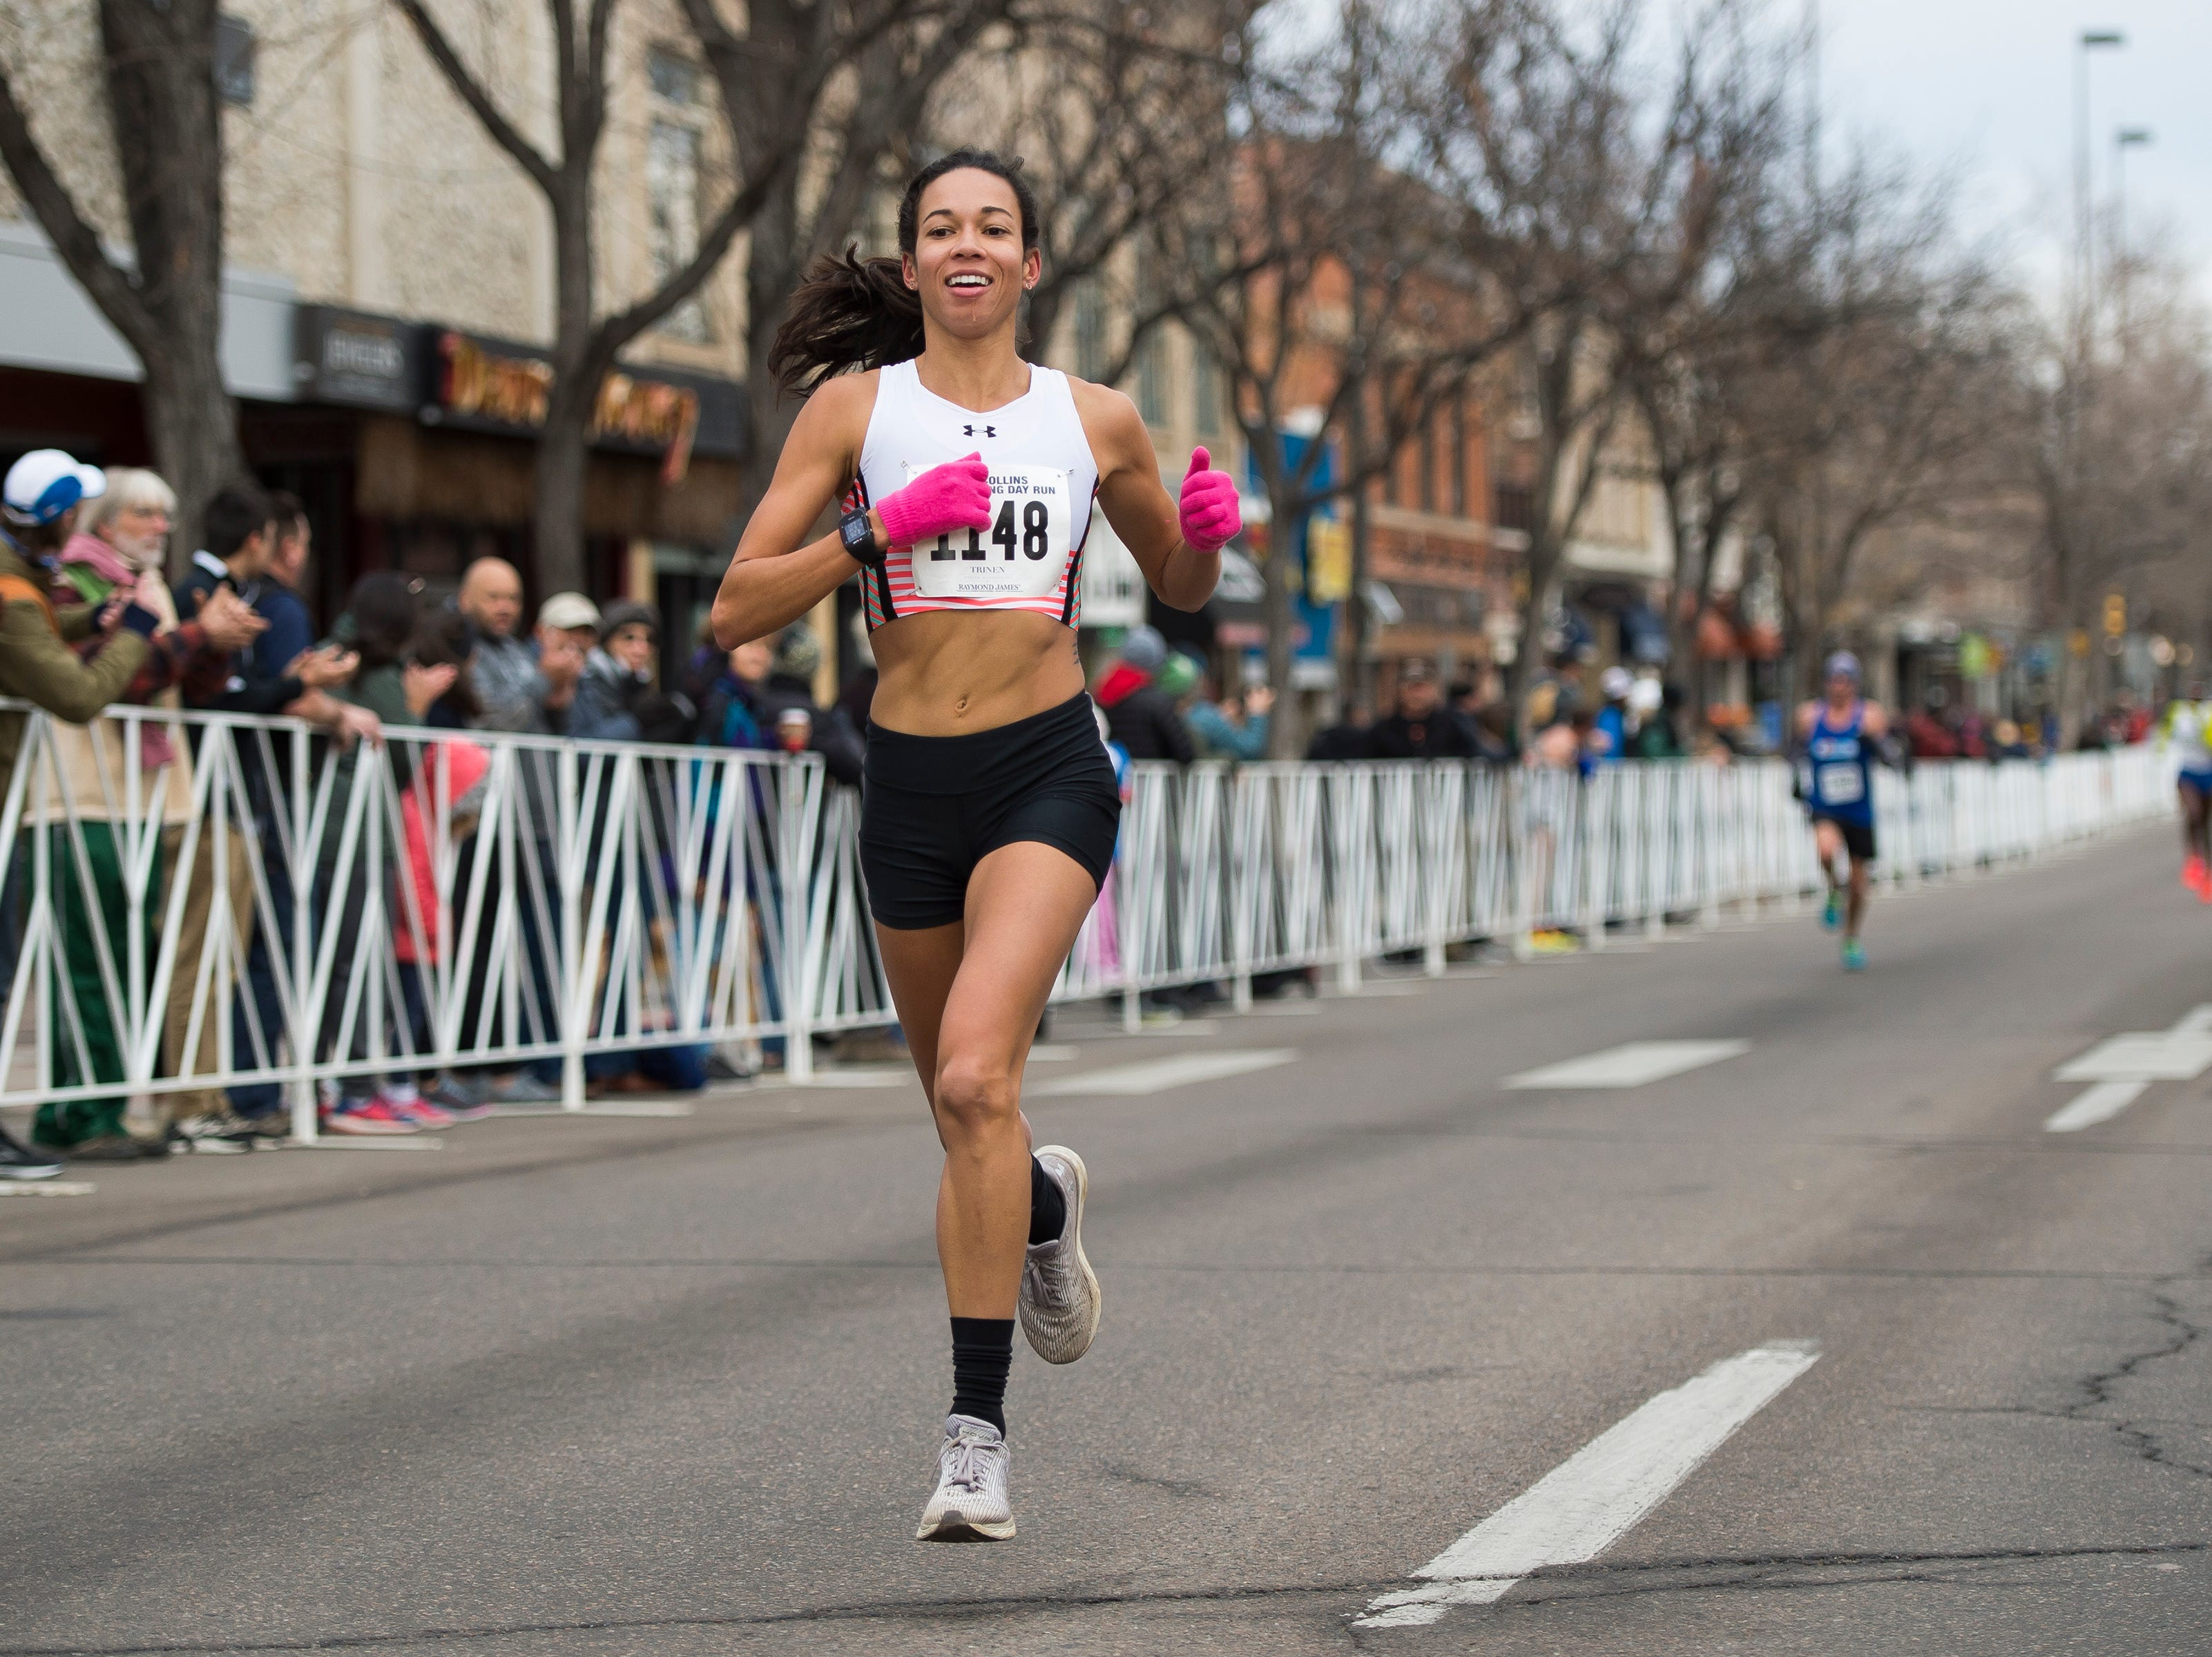 Aisha Praught Leer crosses the finish line to become the first female finisher during the Fort Collins Thanksgiving Day Run on Thursday, Nov. 22, 2018, in Old Town Fort Collins, Colo.